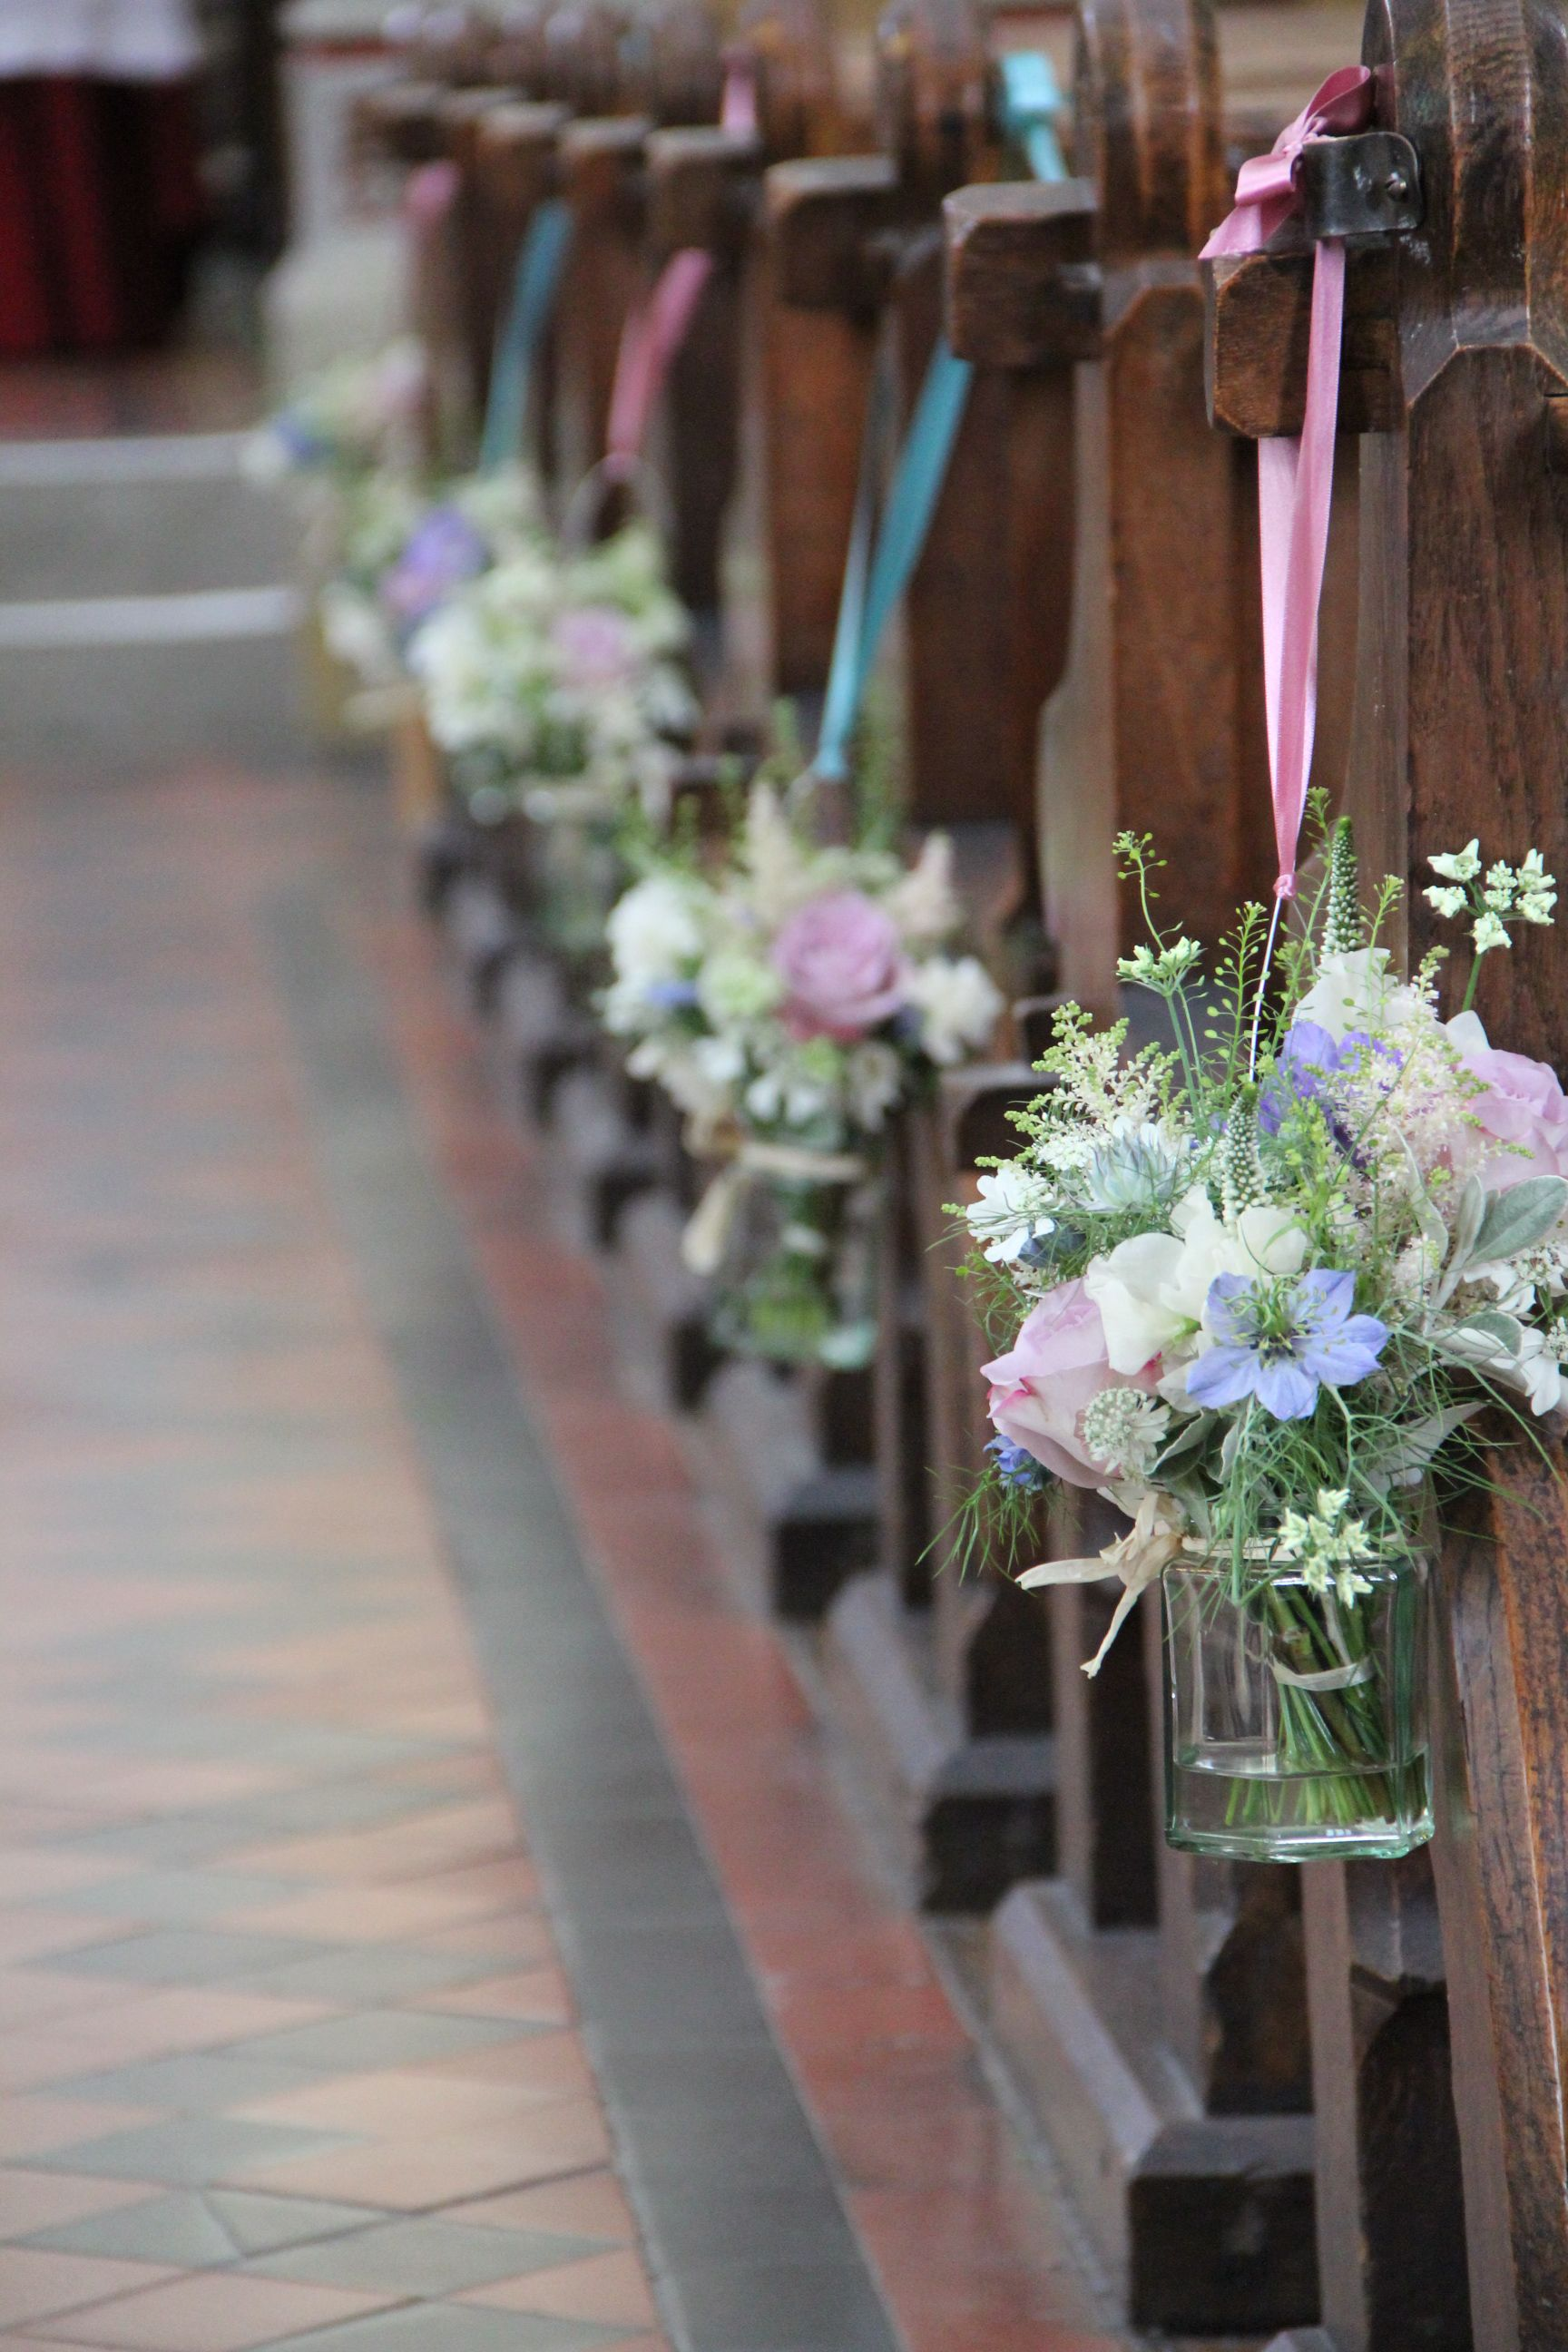 church bench decorations wedding jam jars with posies for the pew ends this is a 2941